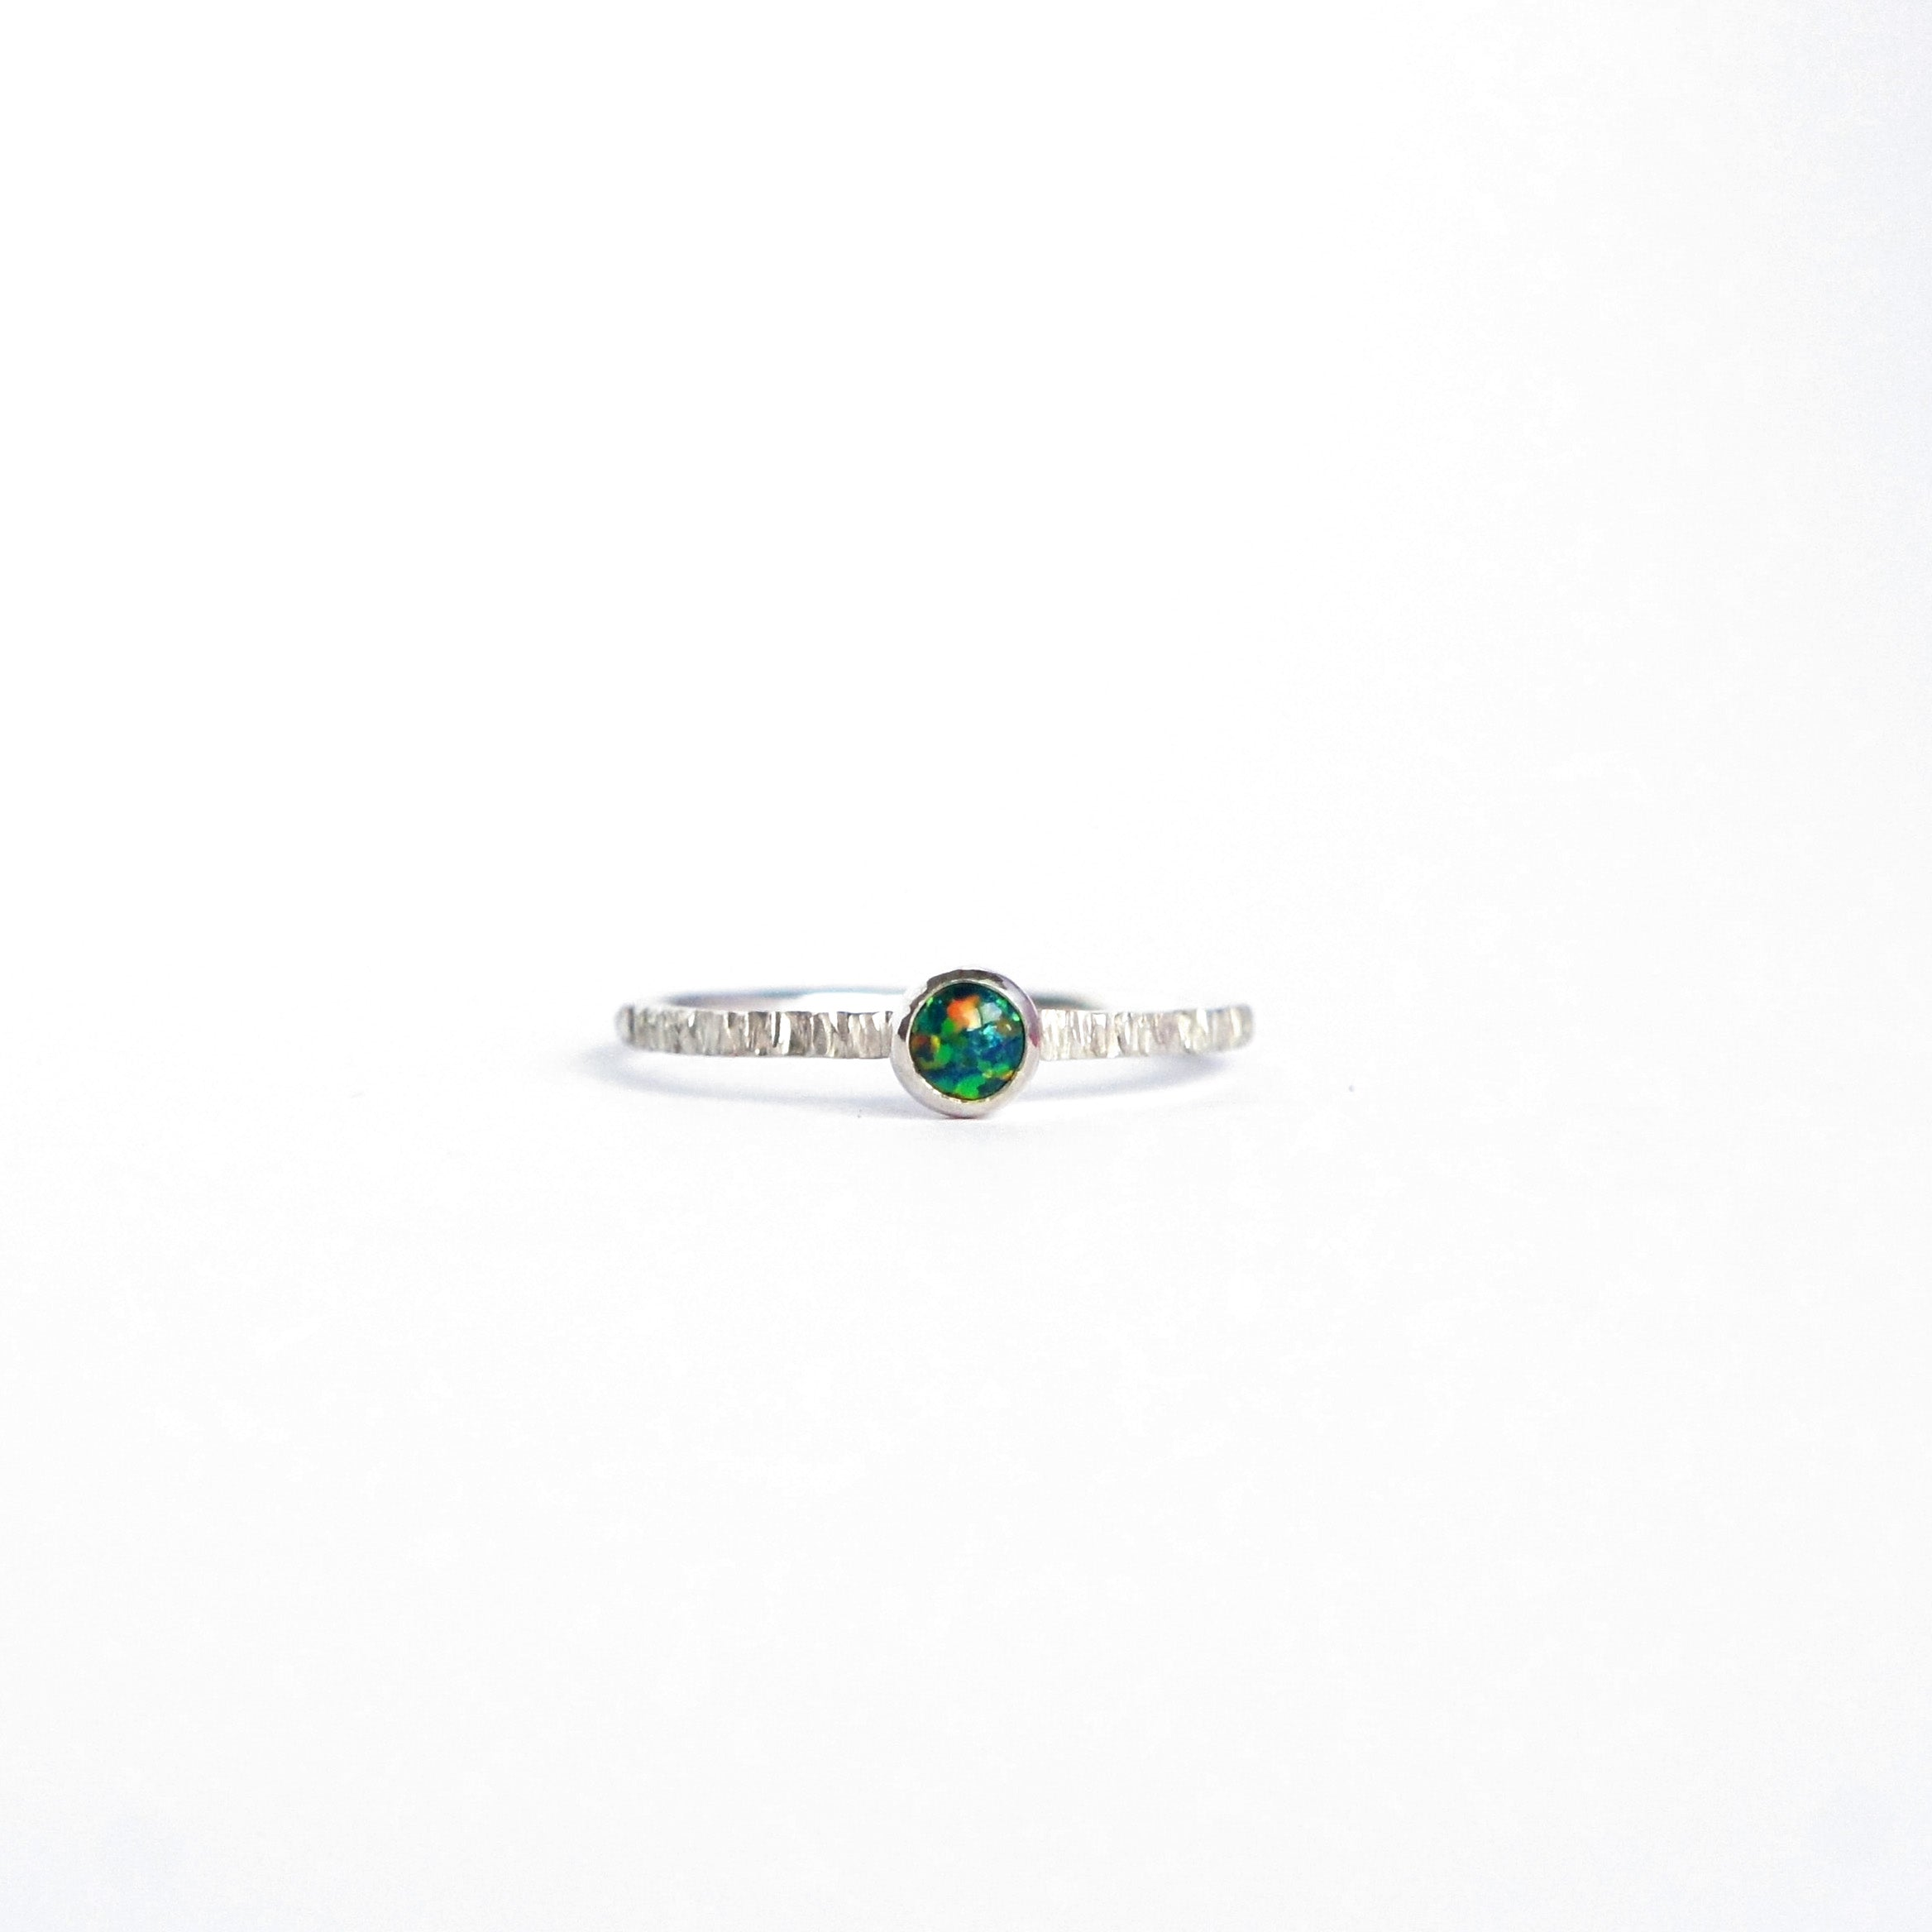 Emily Eliza Arlotte Handcrafted Fine Jewellery - Sterling Silver Forest Opal Dainty Galaxy Ring